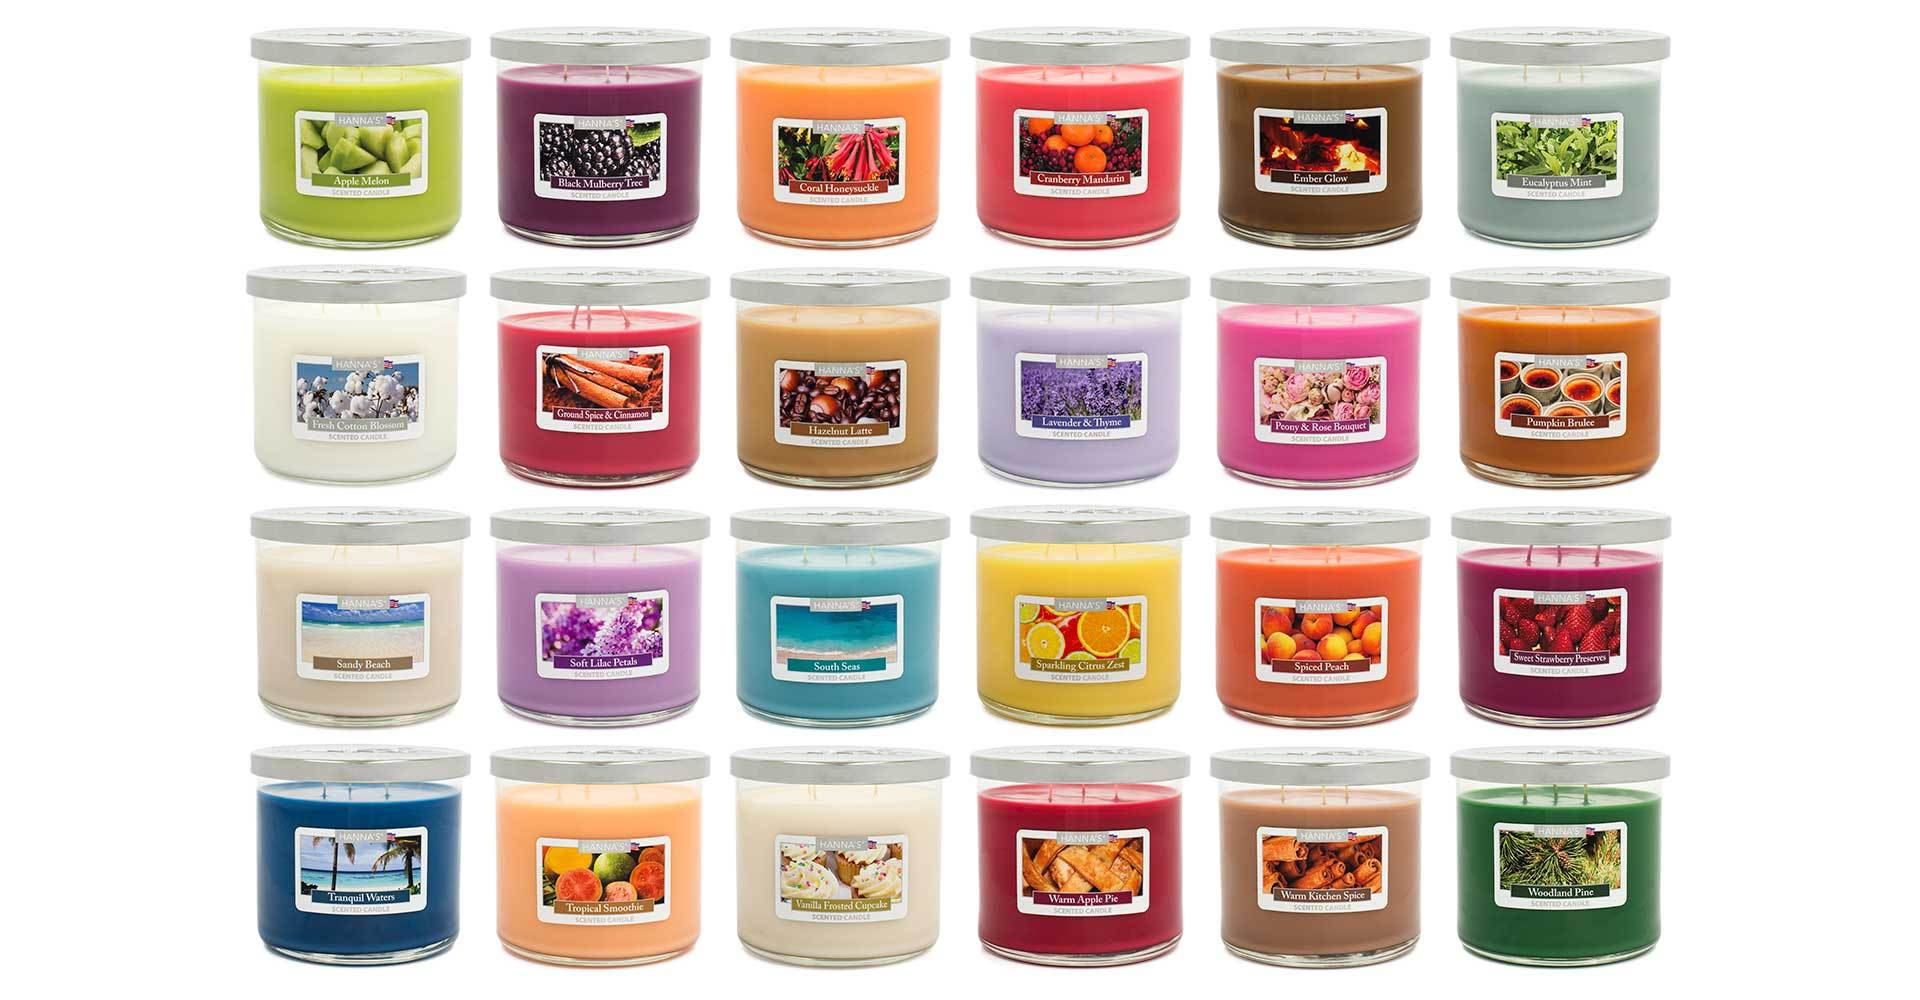 Ground Spice & Cinnamon Scented Large 3 wick Candle - Candlemart.com